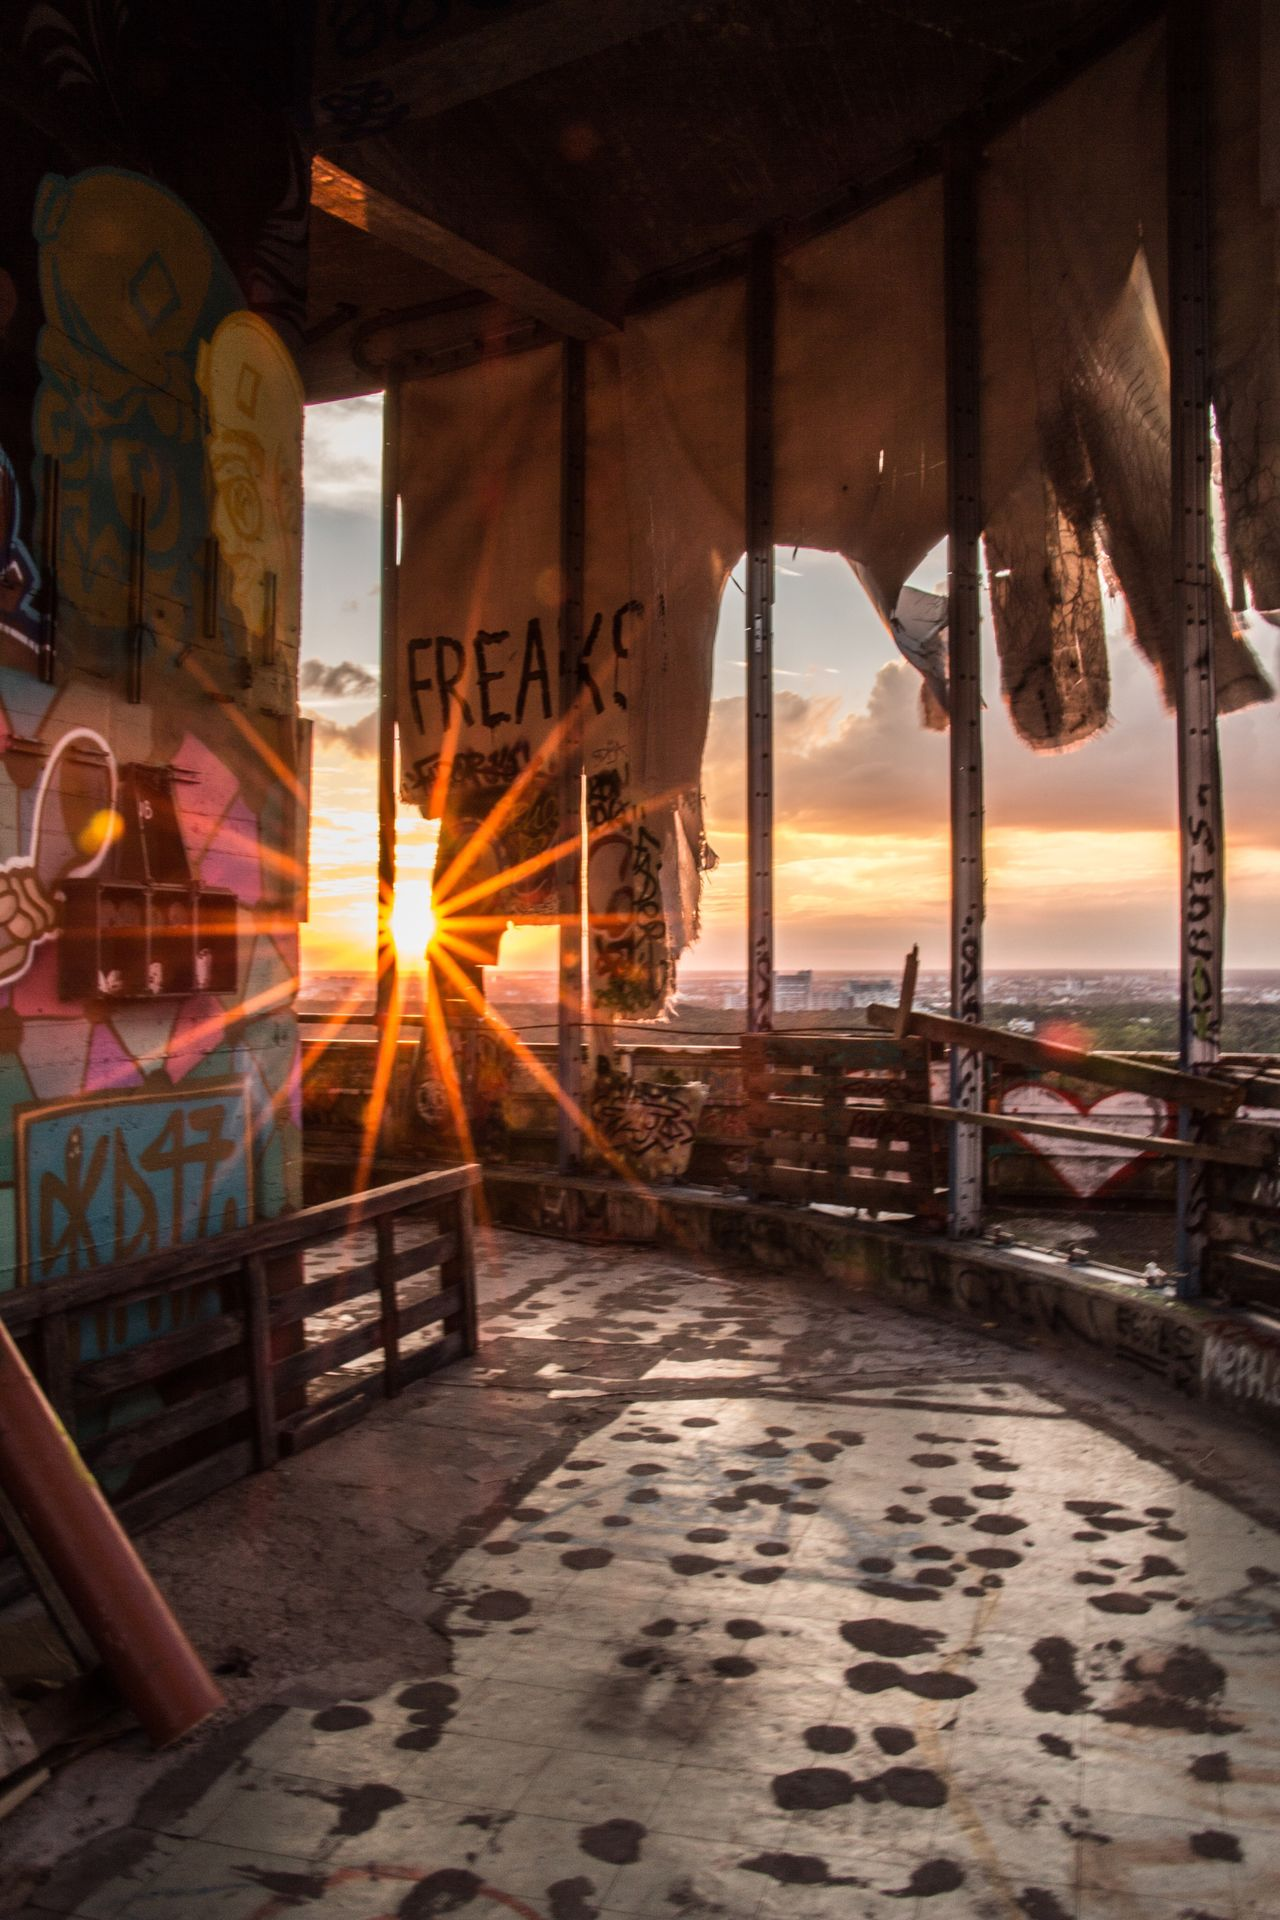 Berliner Ansichten EyeEm Best Shots Structure Architecture Teufelsberg Berlin Teufelsbergberlin Taking Photos EyeEm Best Edits Old Ruin NSA Station Berlin Sky Sunset Ruined Building Metall Graffiti Rotten Abhörstation Teufelsberg Abhörstation Evening Evening Sky Ruin EyeEm Gegenlicht